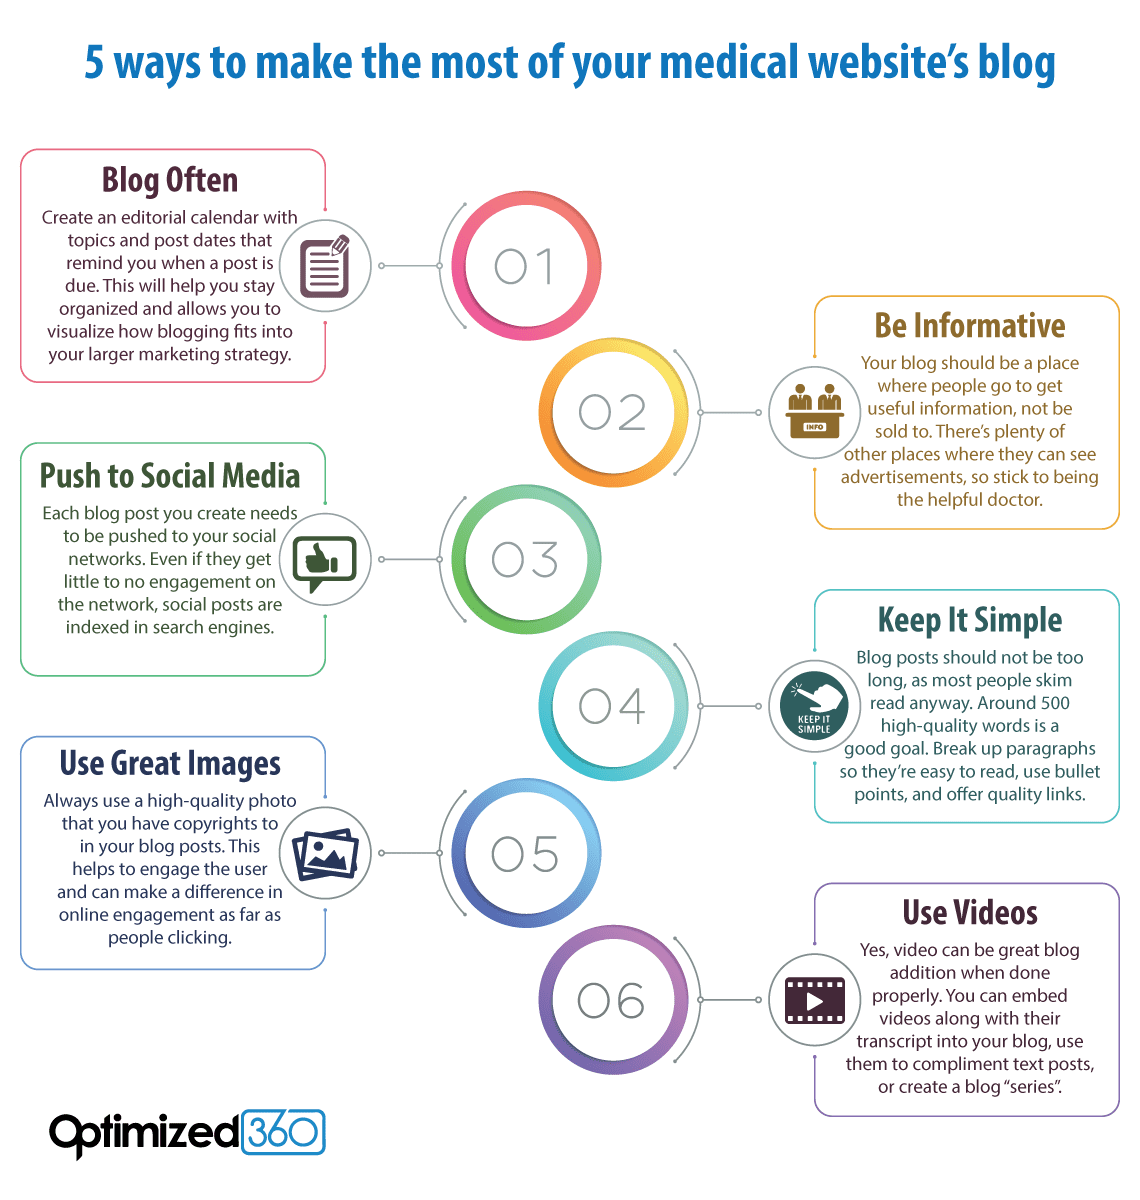 5 ways to get the most of your blog